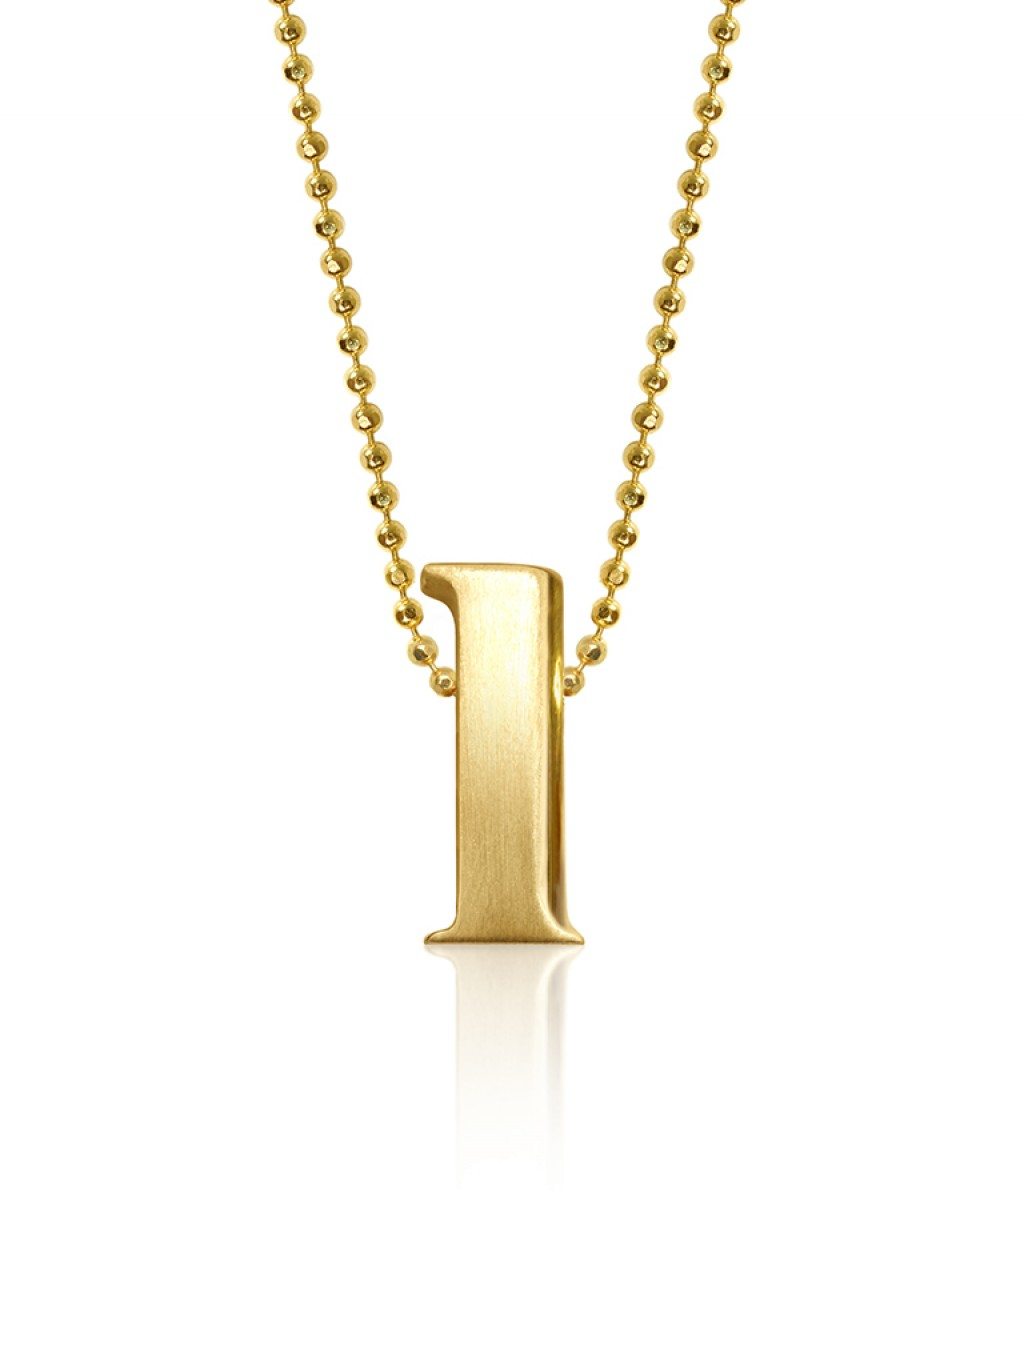 BaubleBar Alex Woo Gold Alpha Pendant in Metallic